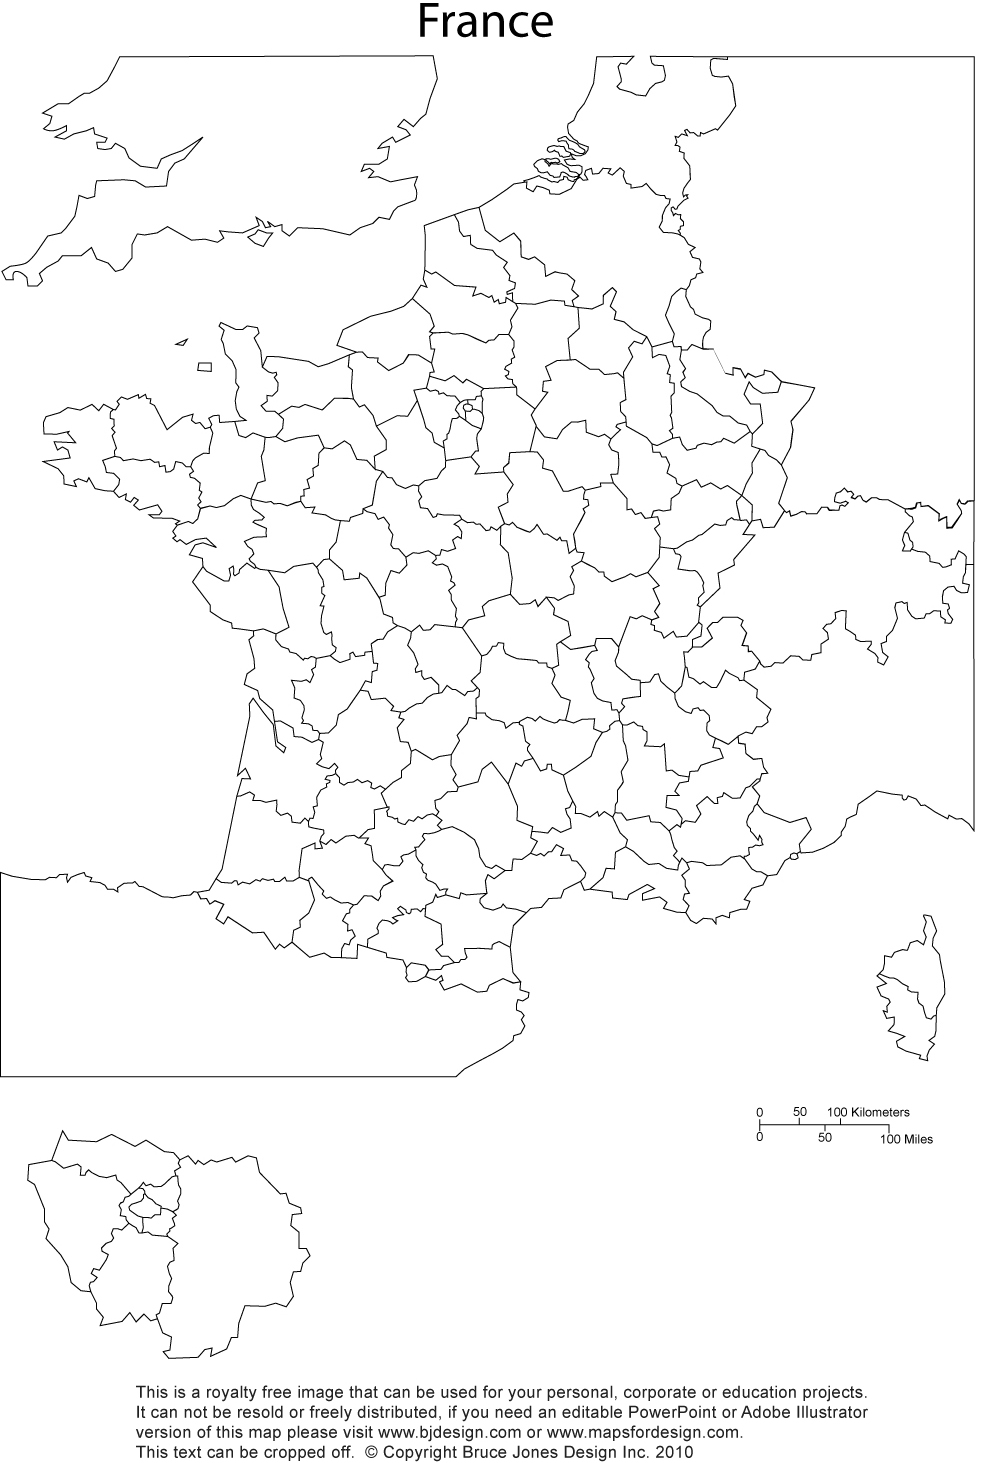 Districts Of France Map.France Map Printable Blank Royalty Free Jpg